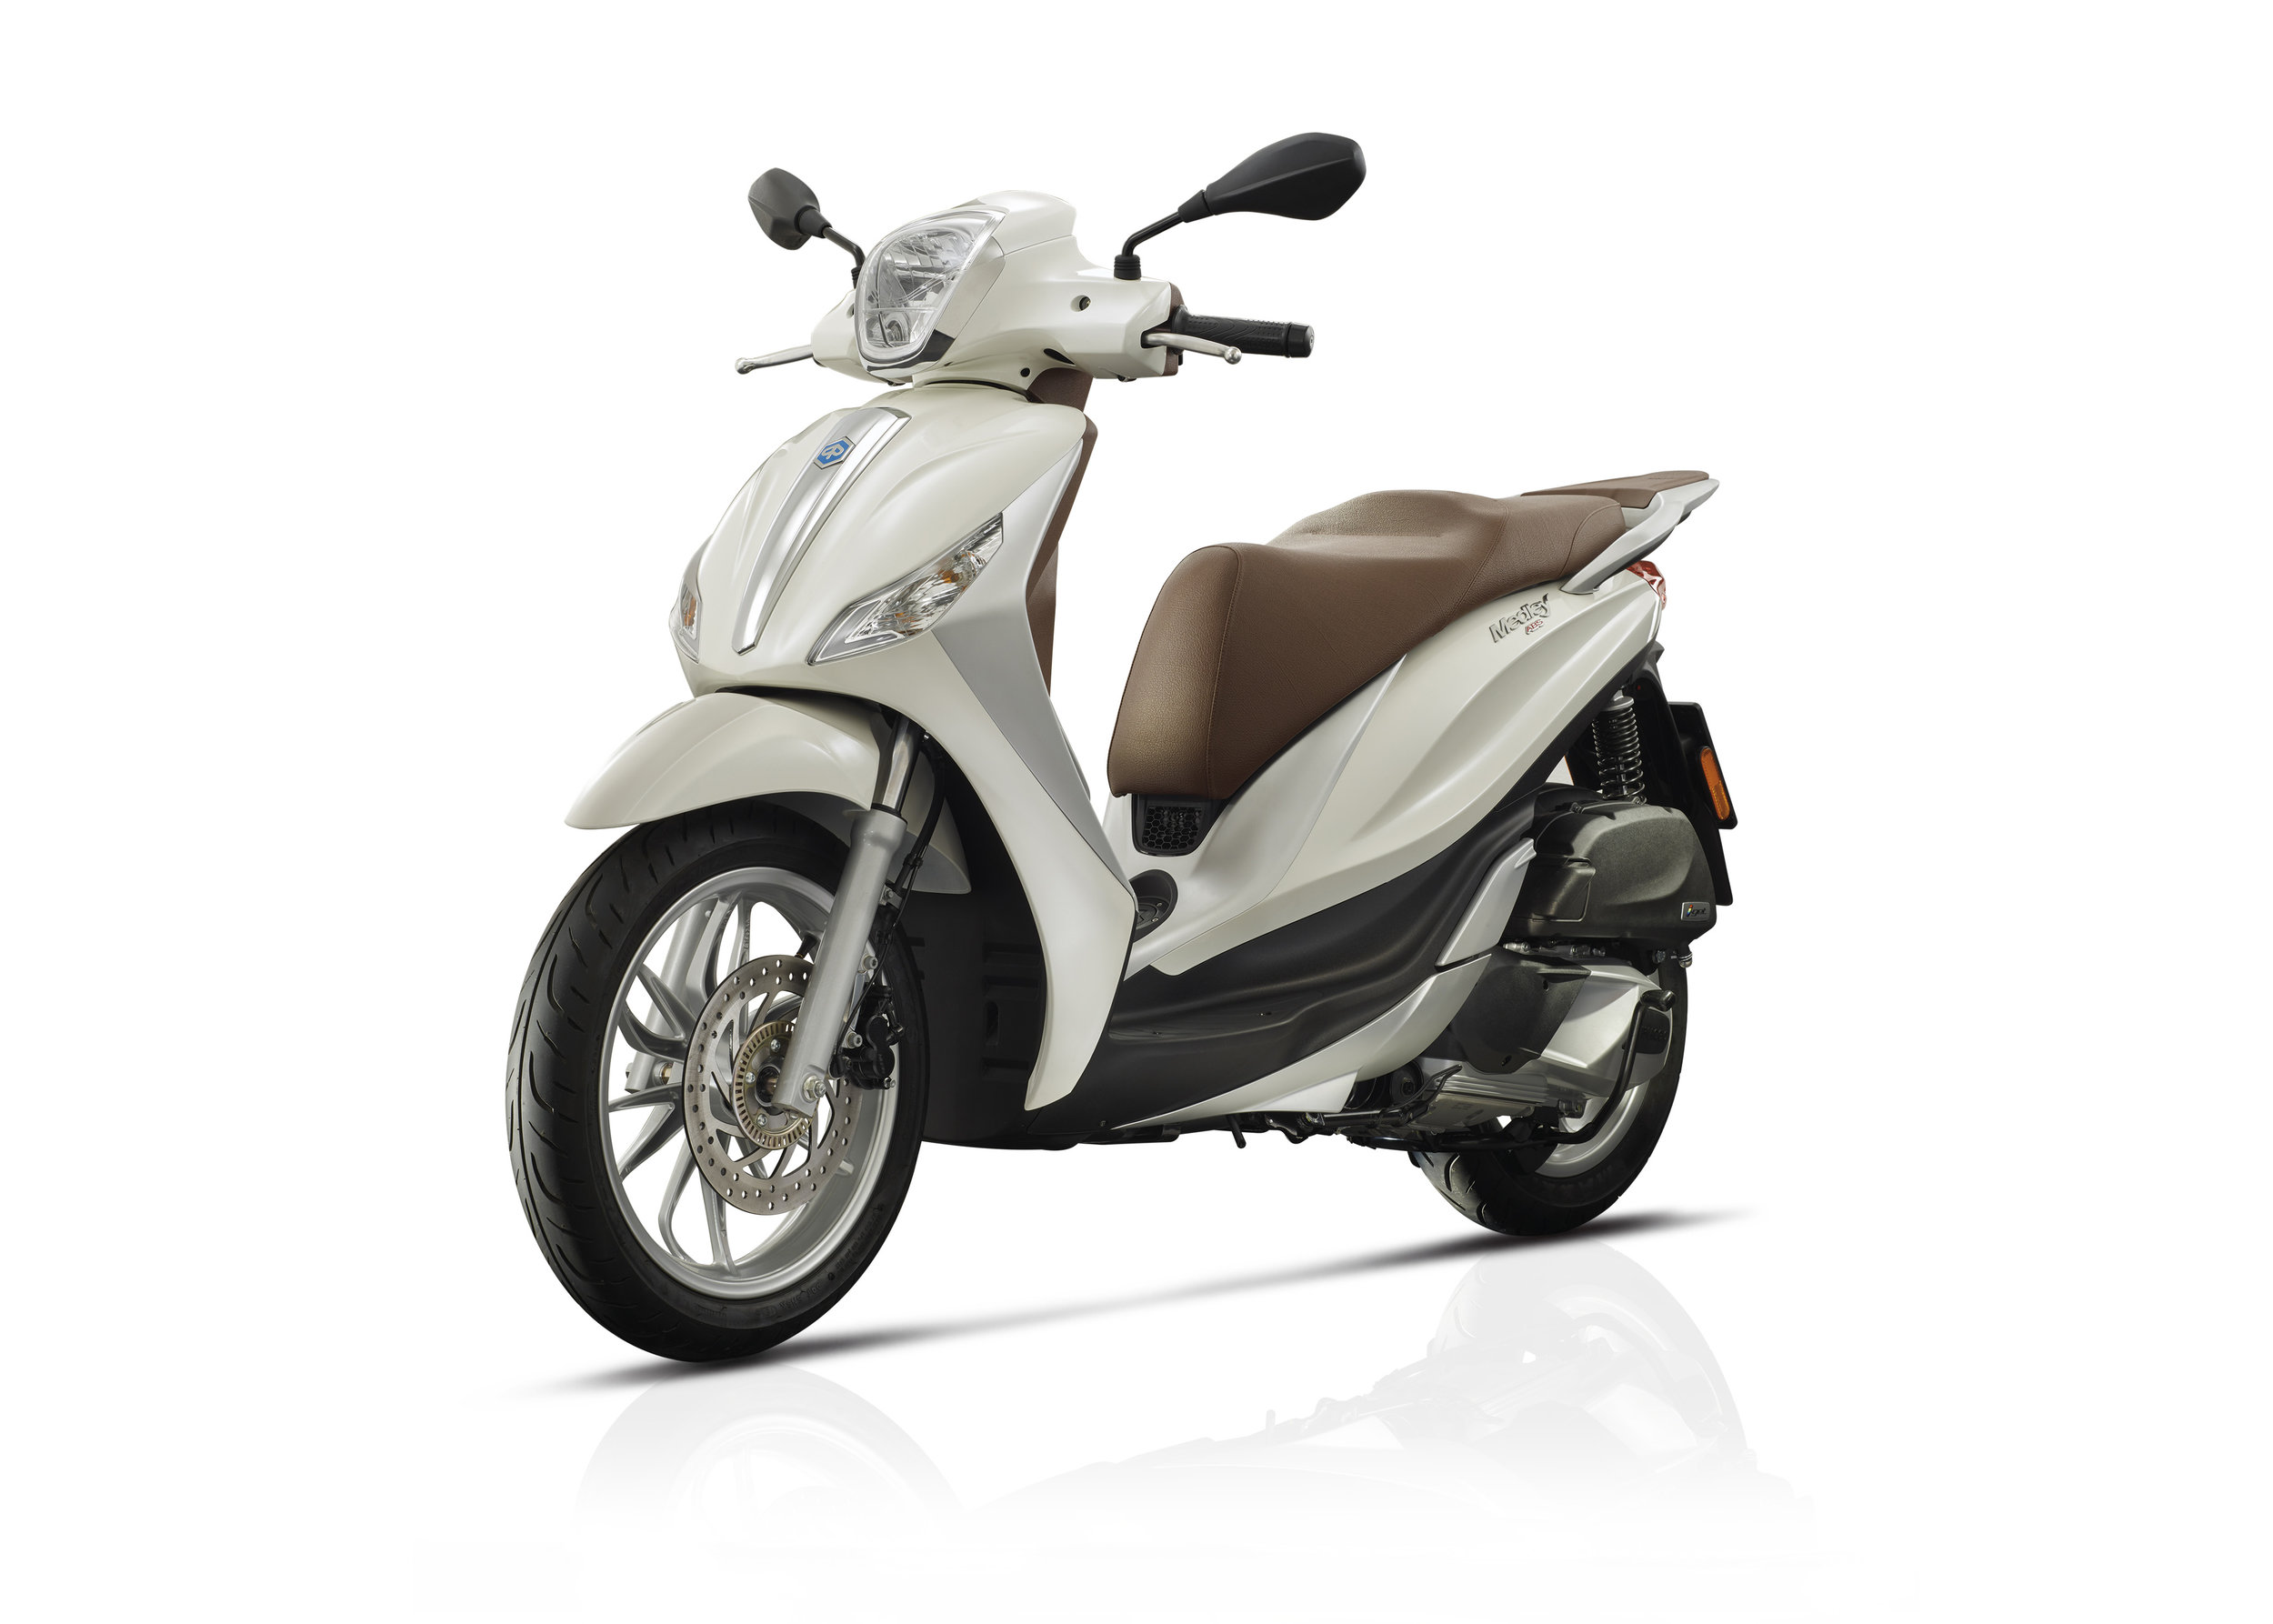 Piaggio Medley 125 equipped lateral dx 03.jpg